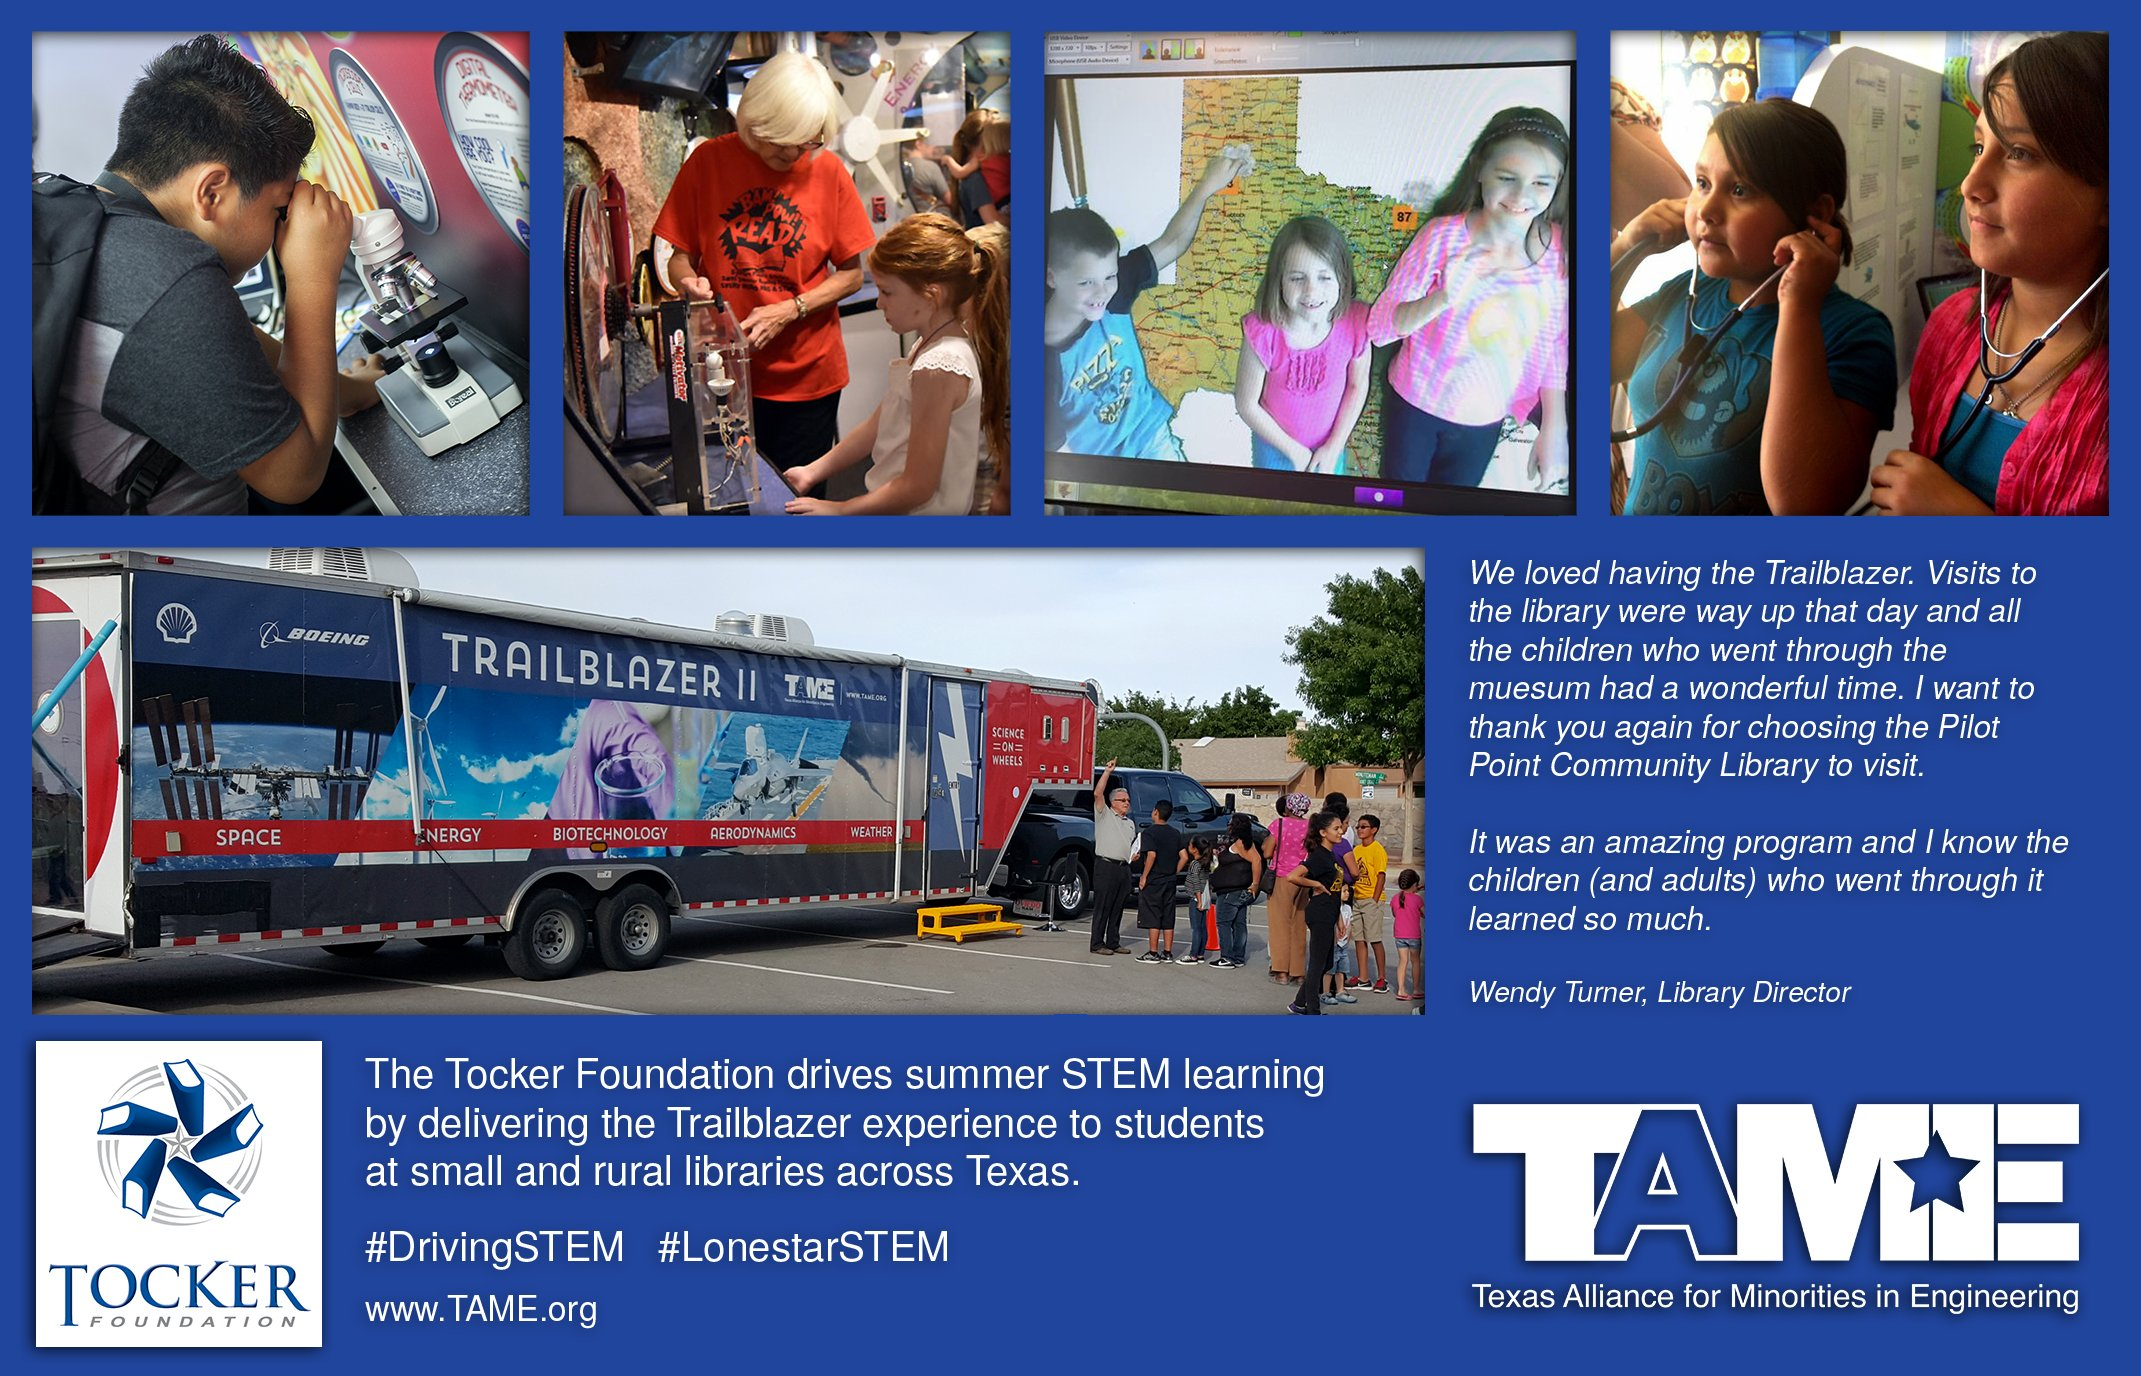 The Tocker foundation drives summer STEM learning by delivering the Trailblazer experience to students at small and rural libraries across Texas.